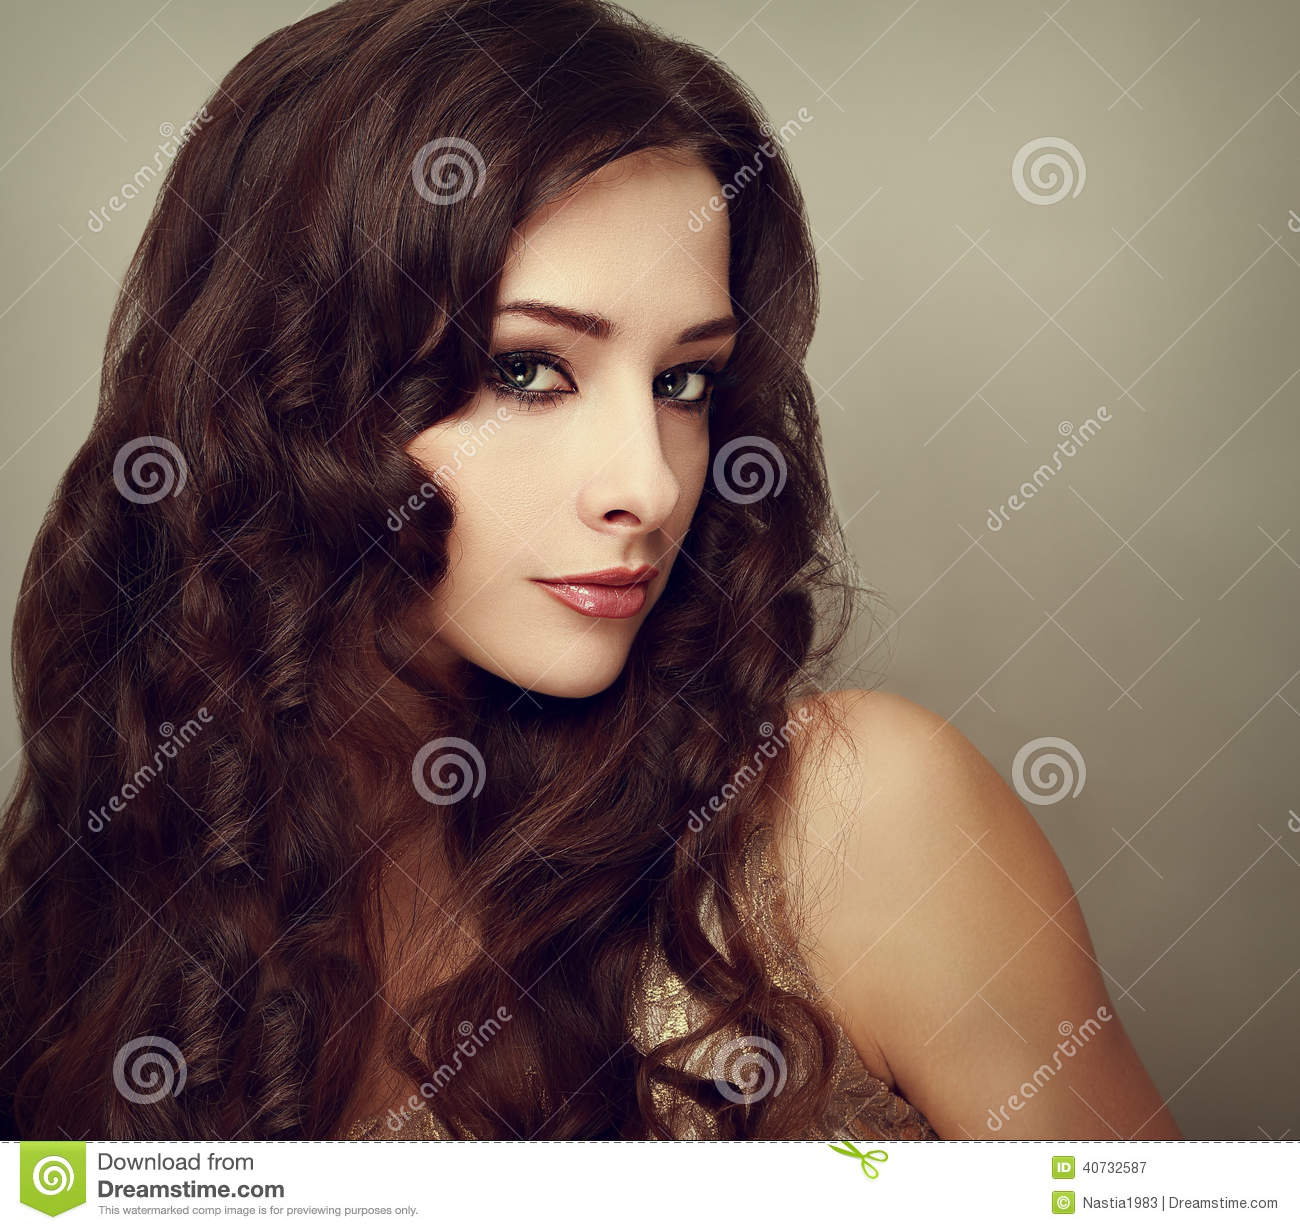 Fashion luxury female model with long curly hair. Vogue